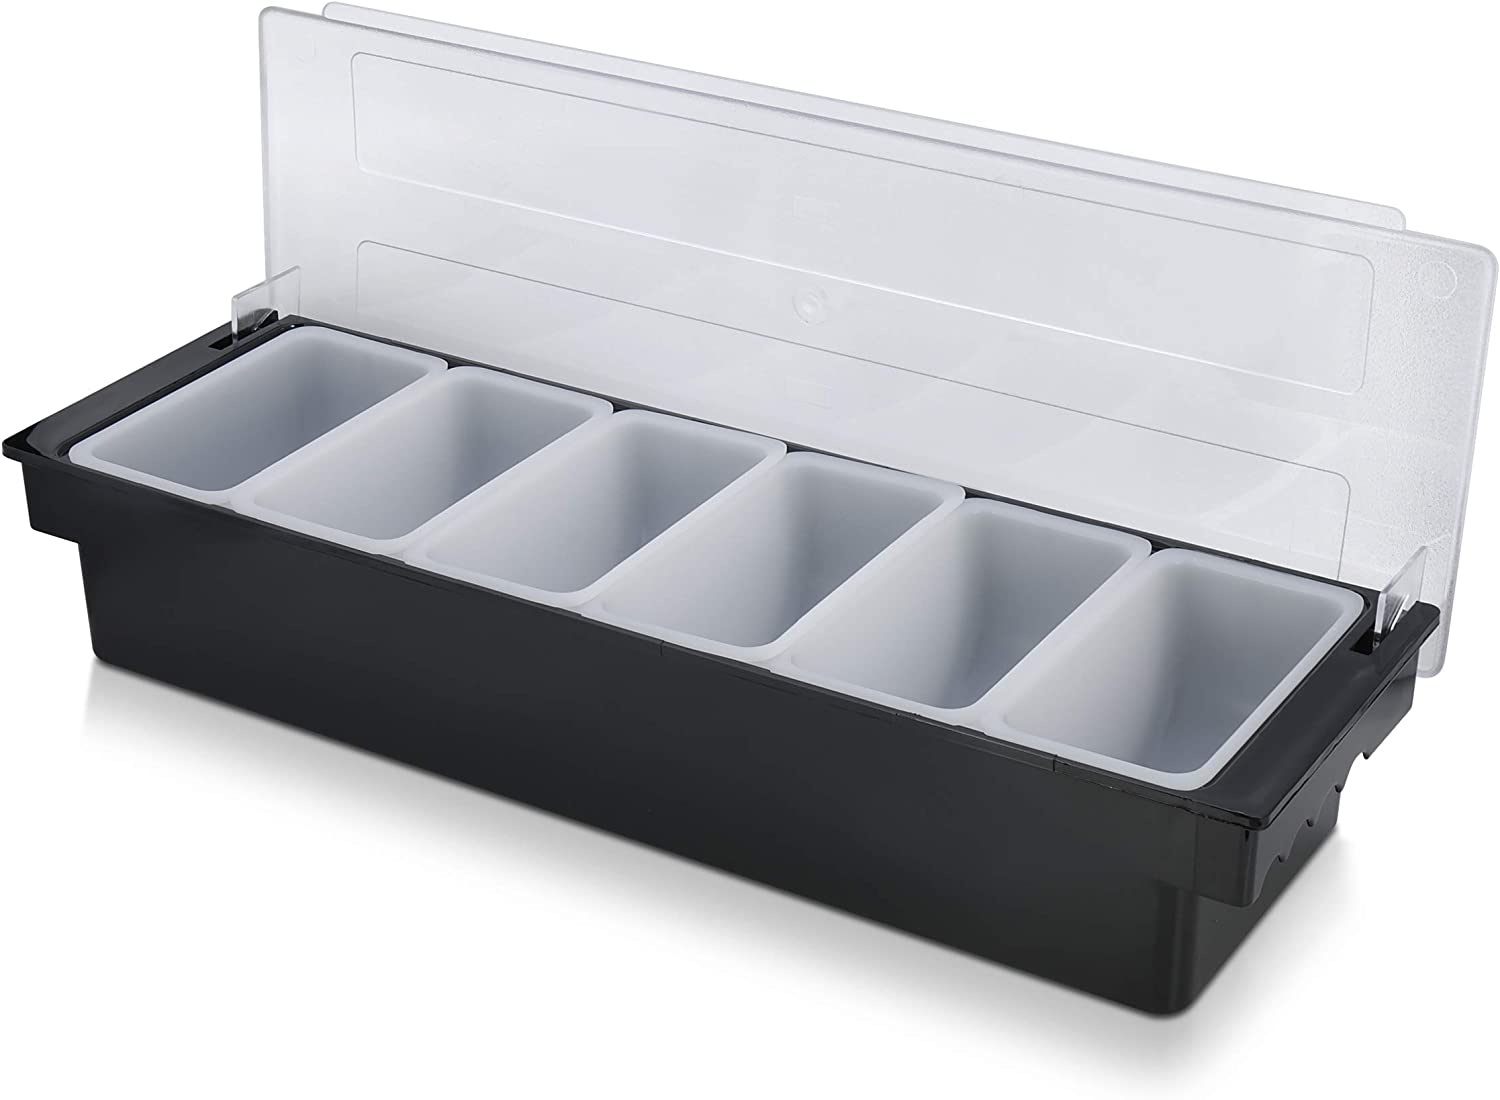 Simpli-Magic 79241 Condiment Holder and Dispenser with 6 Compartments, Large, Black